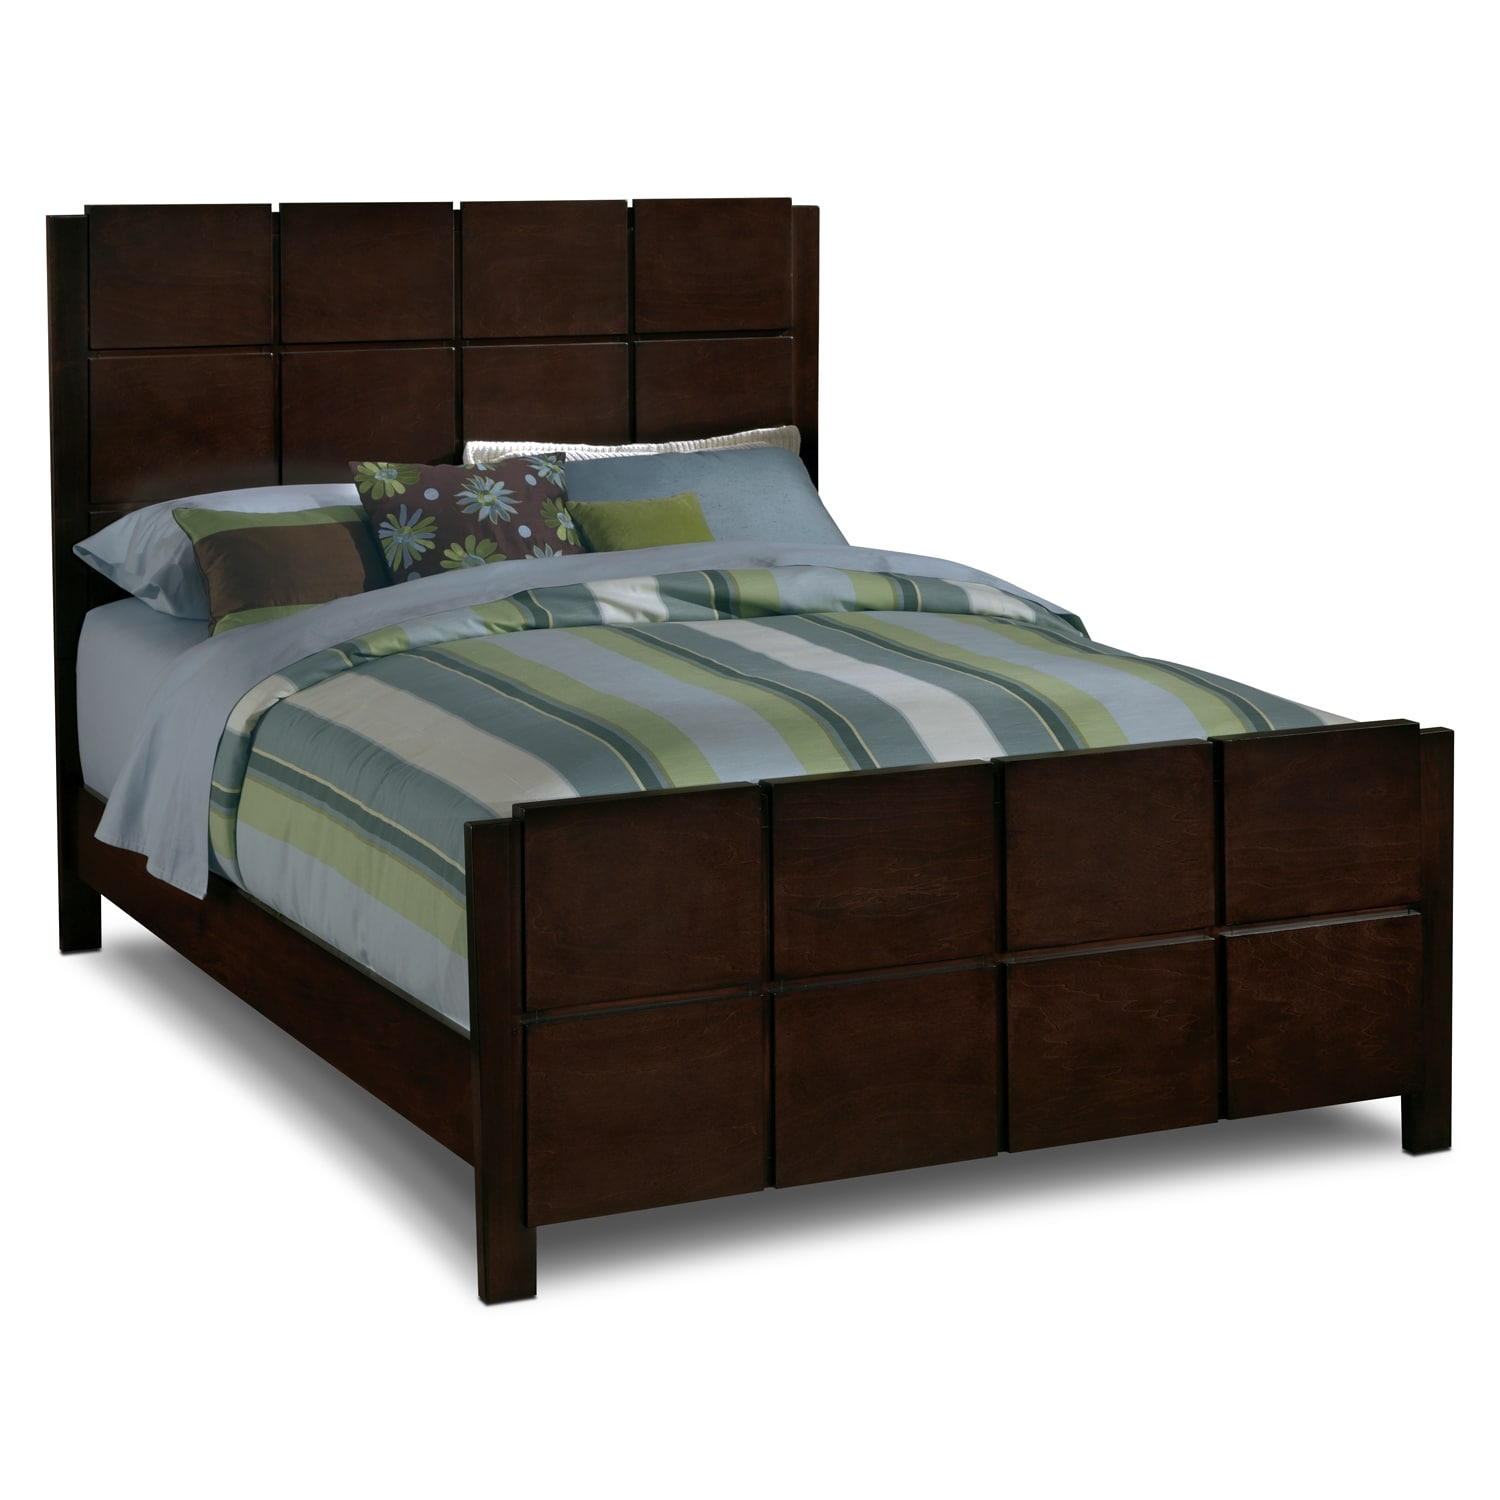 Mosaic queen bed value city furniture American home furniture bed frames